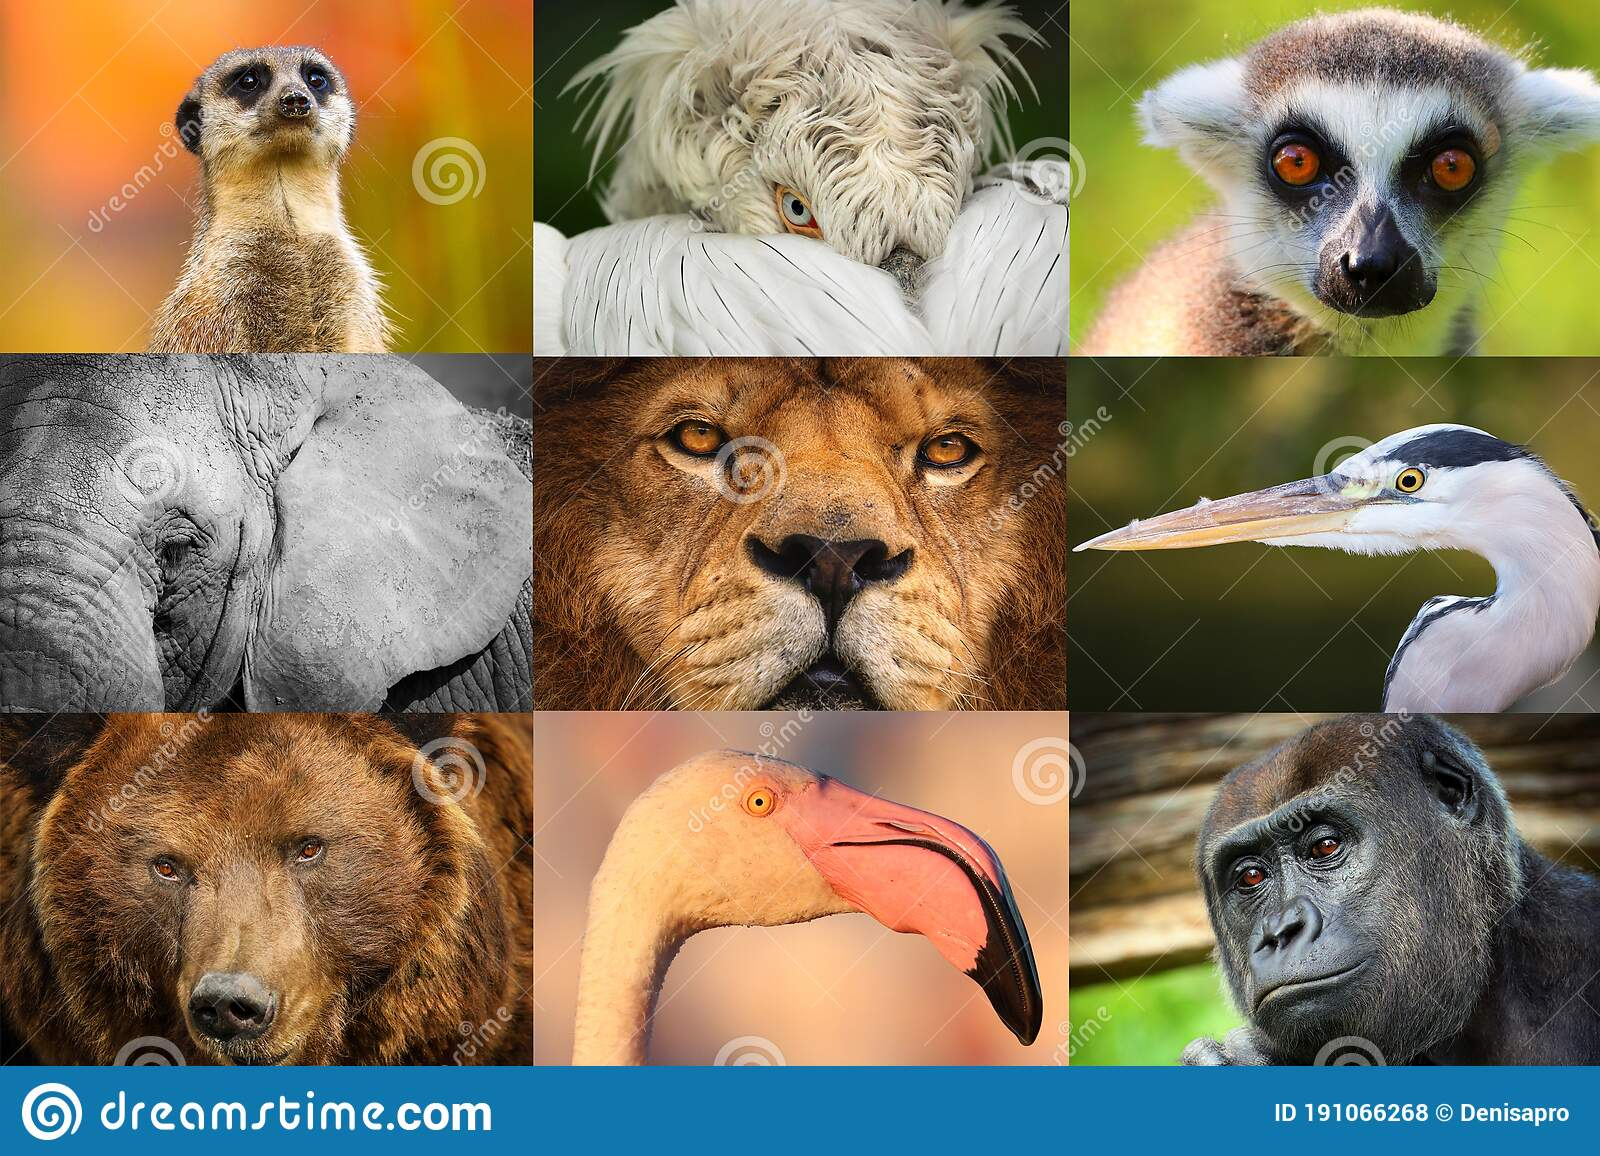 550 Animal Collage Zoo Photos Free Royalty Free Stock Photos From Dreamstime